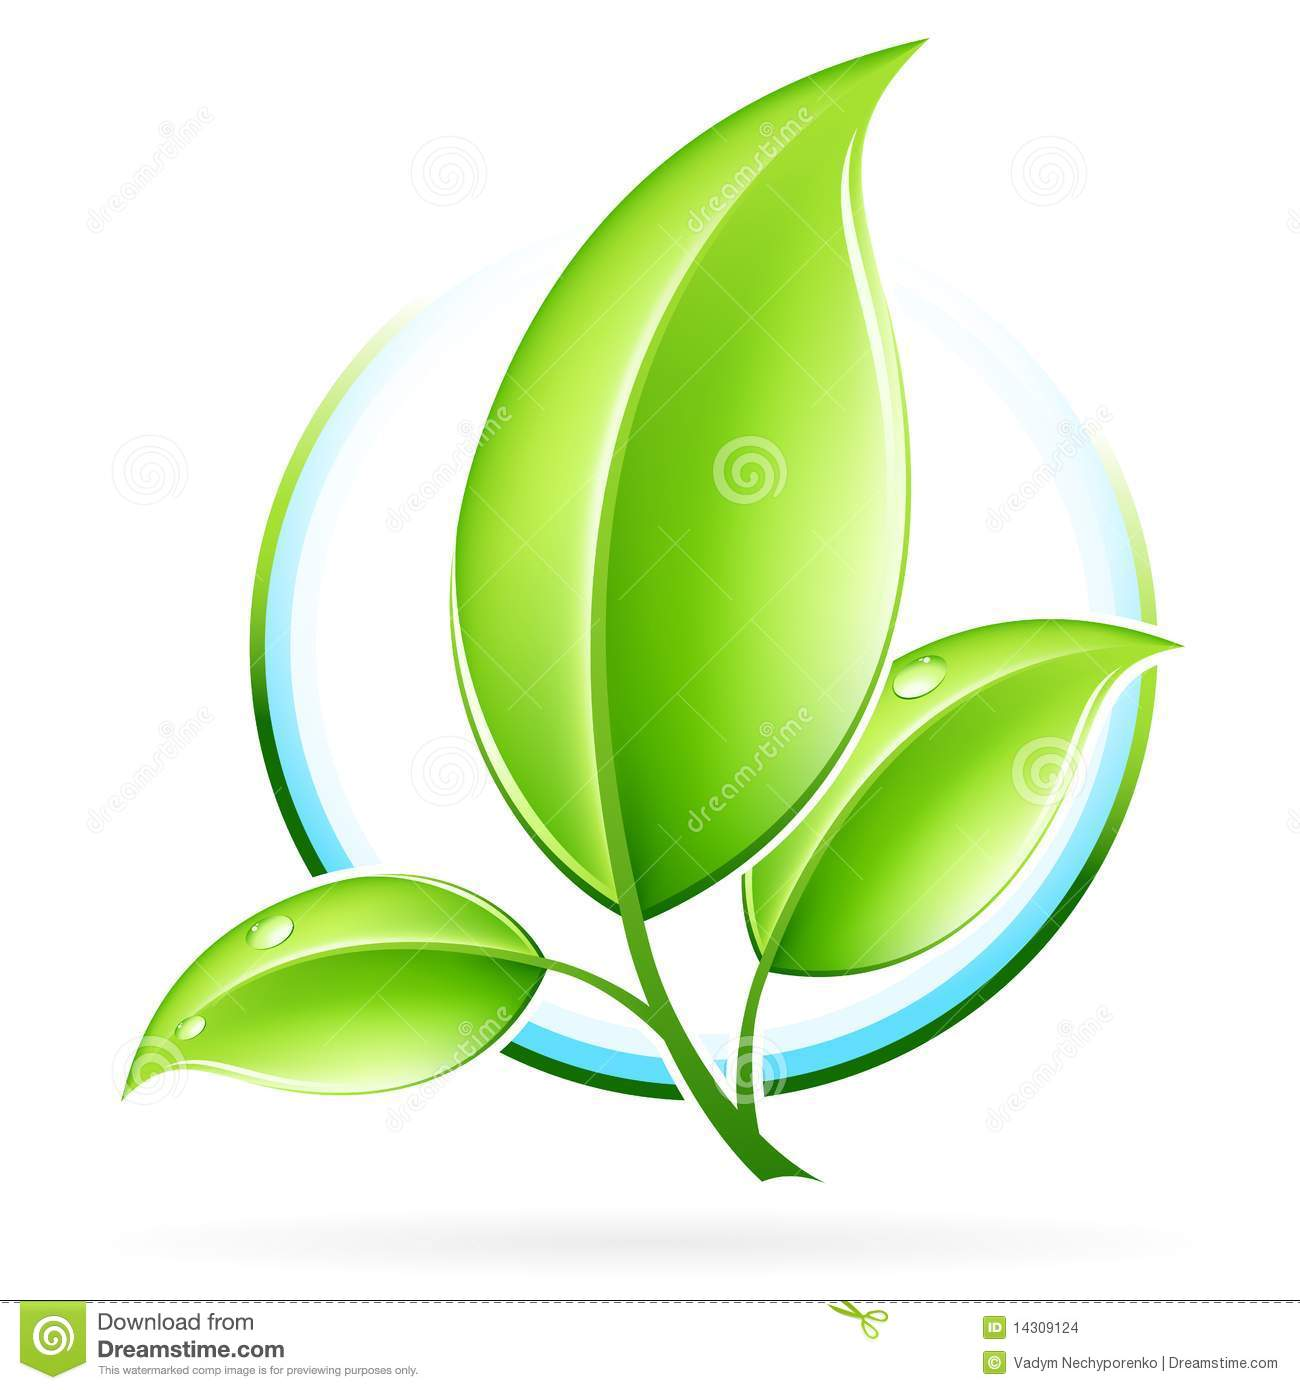 ECO Icon Stock Images - Image: 14309124